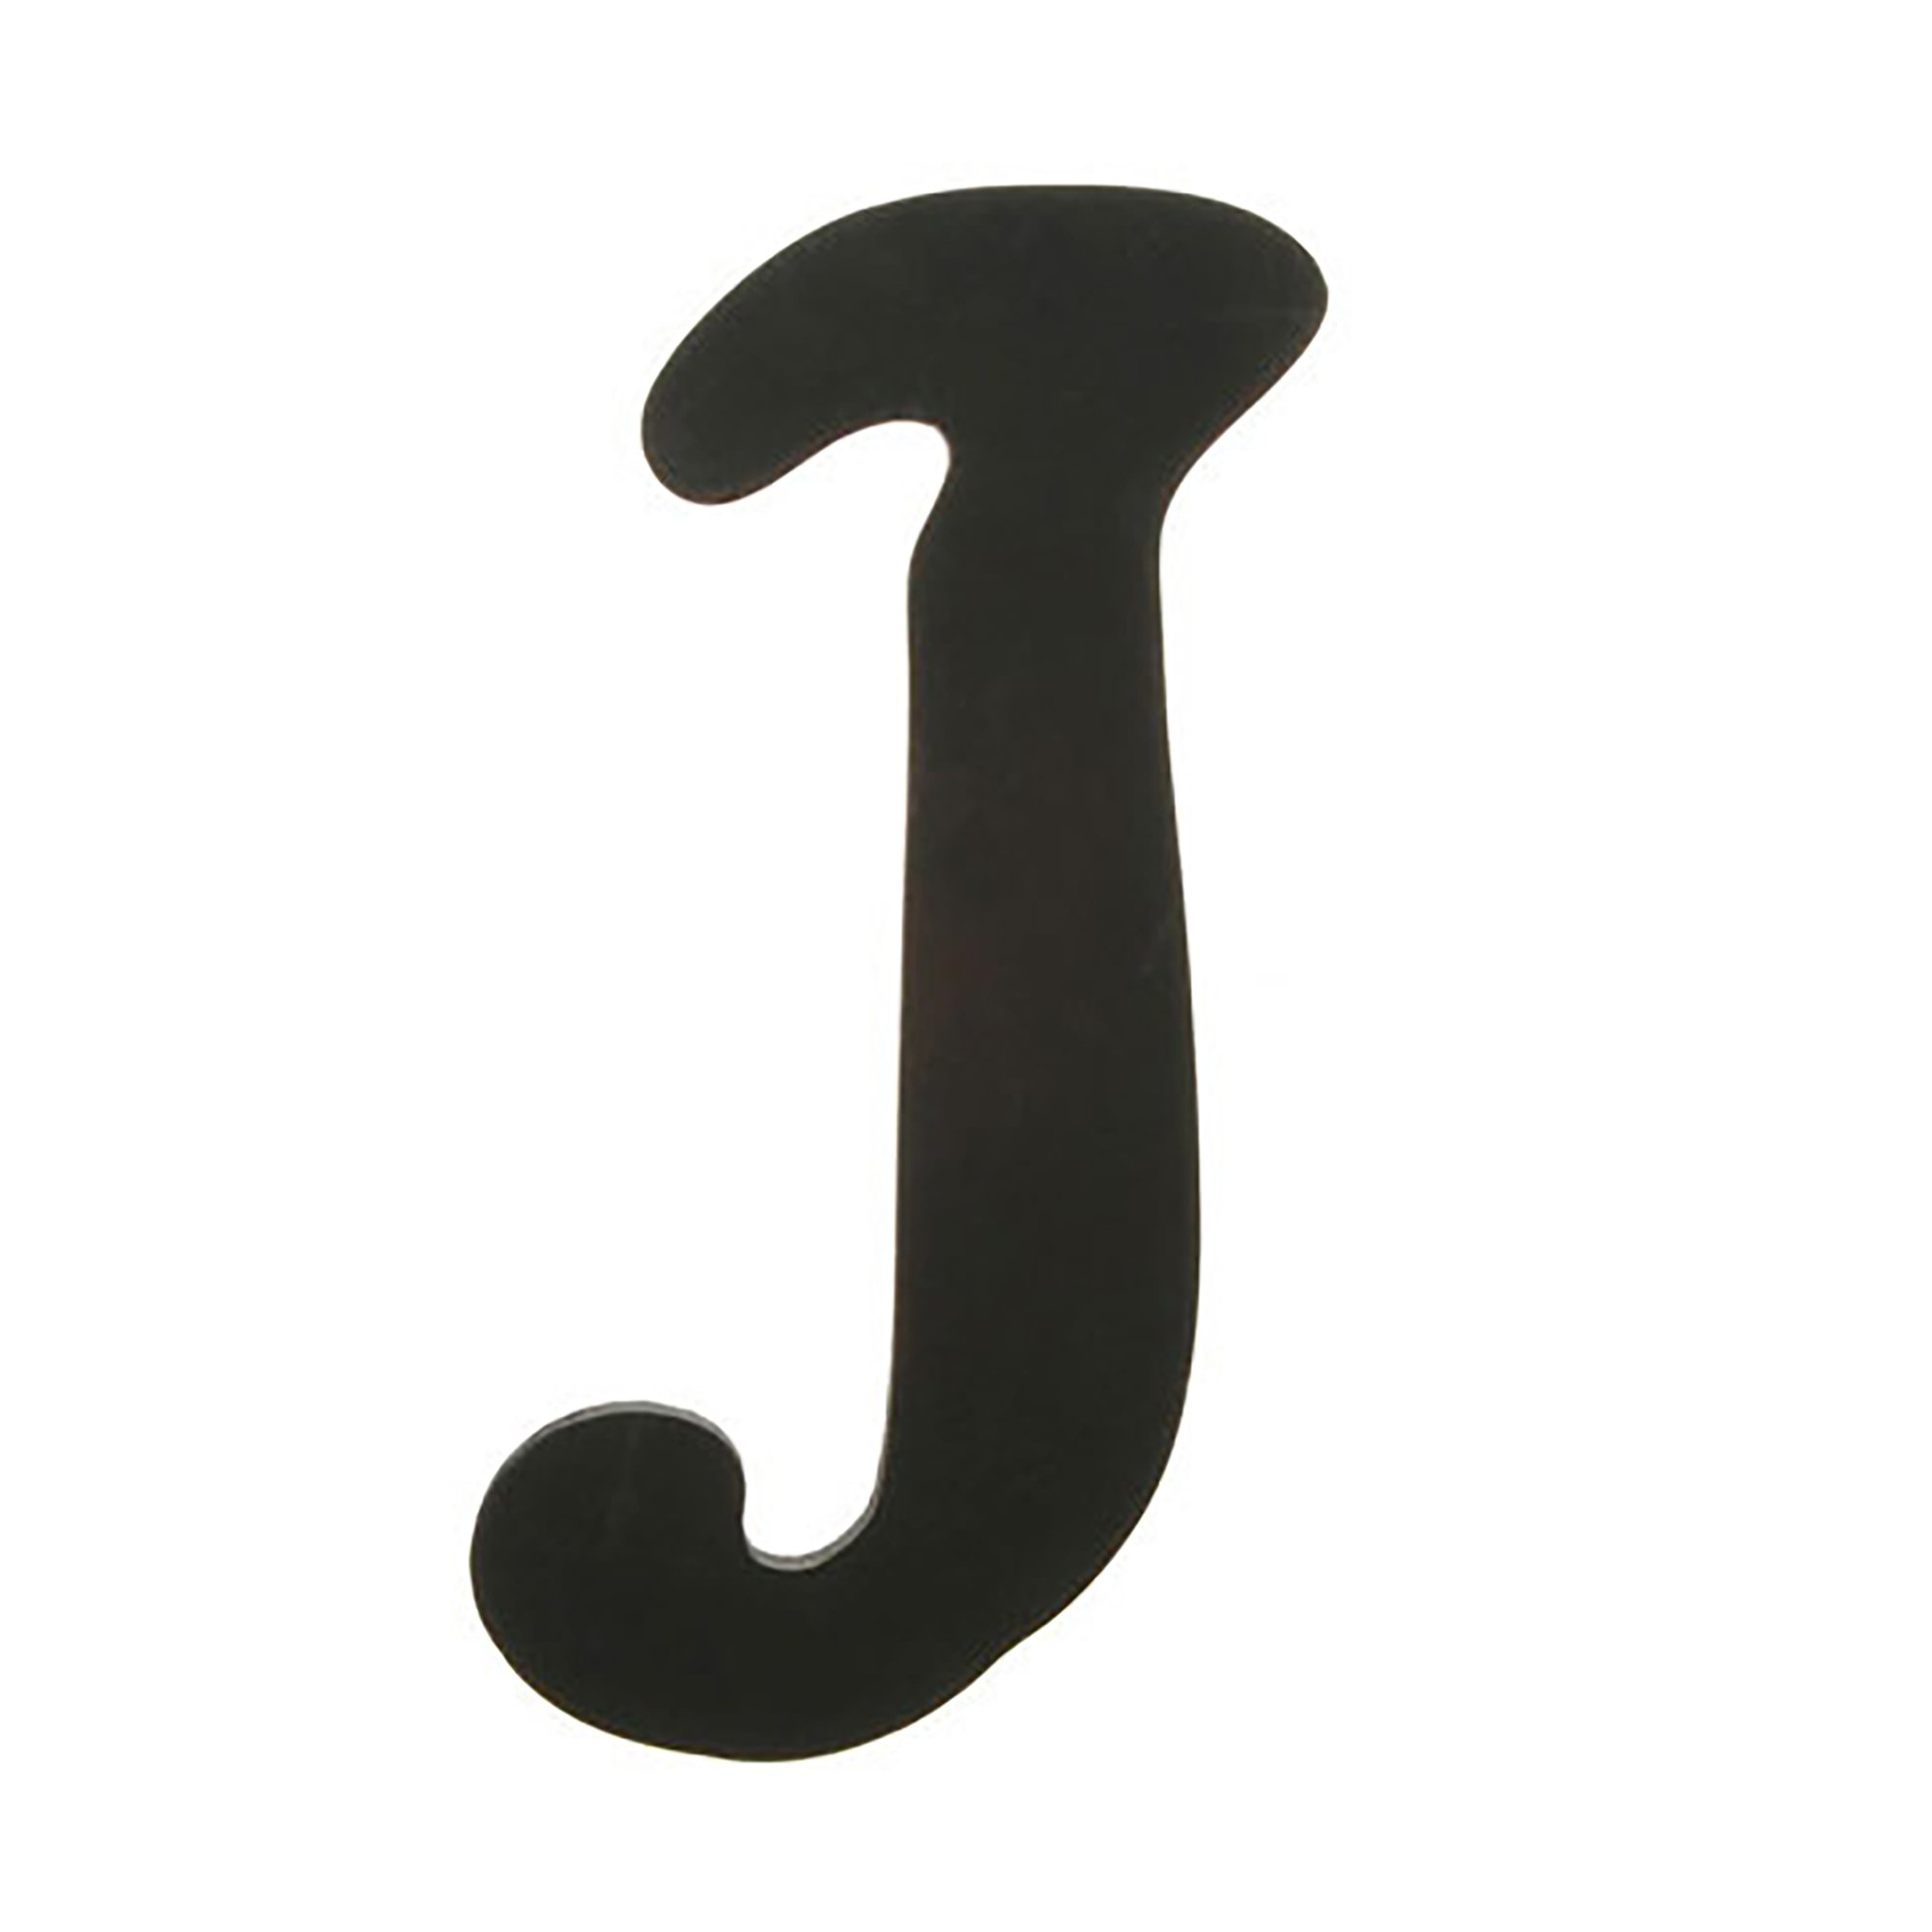 Darice 9189-J Solid Wood Letter, Capital, 9'', J, Black by Darice (Image #1)